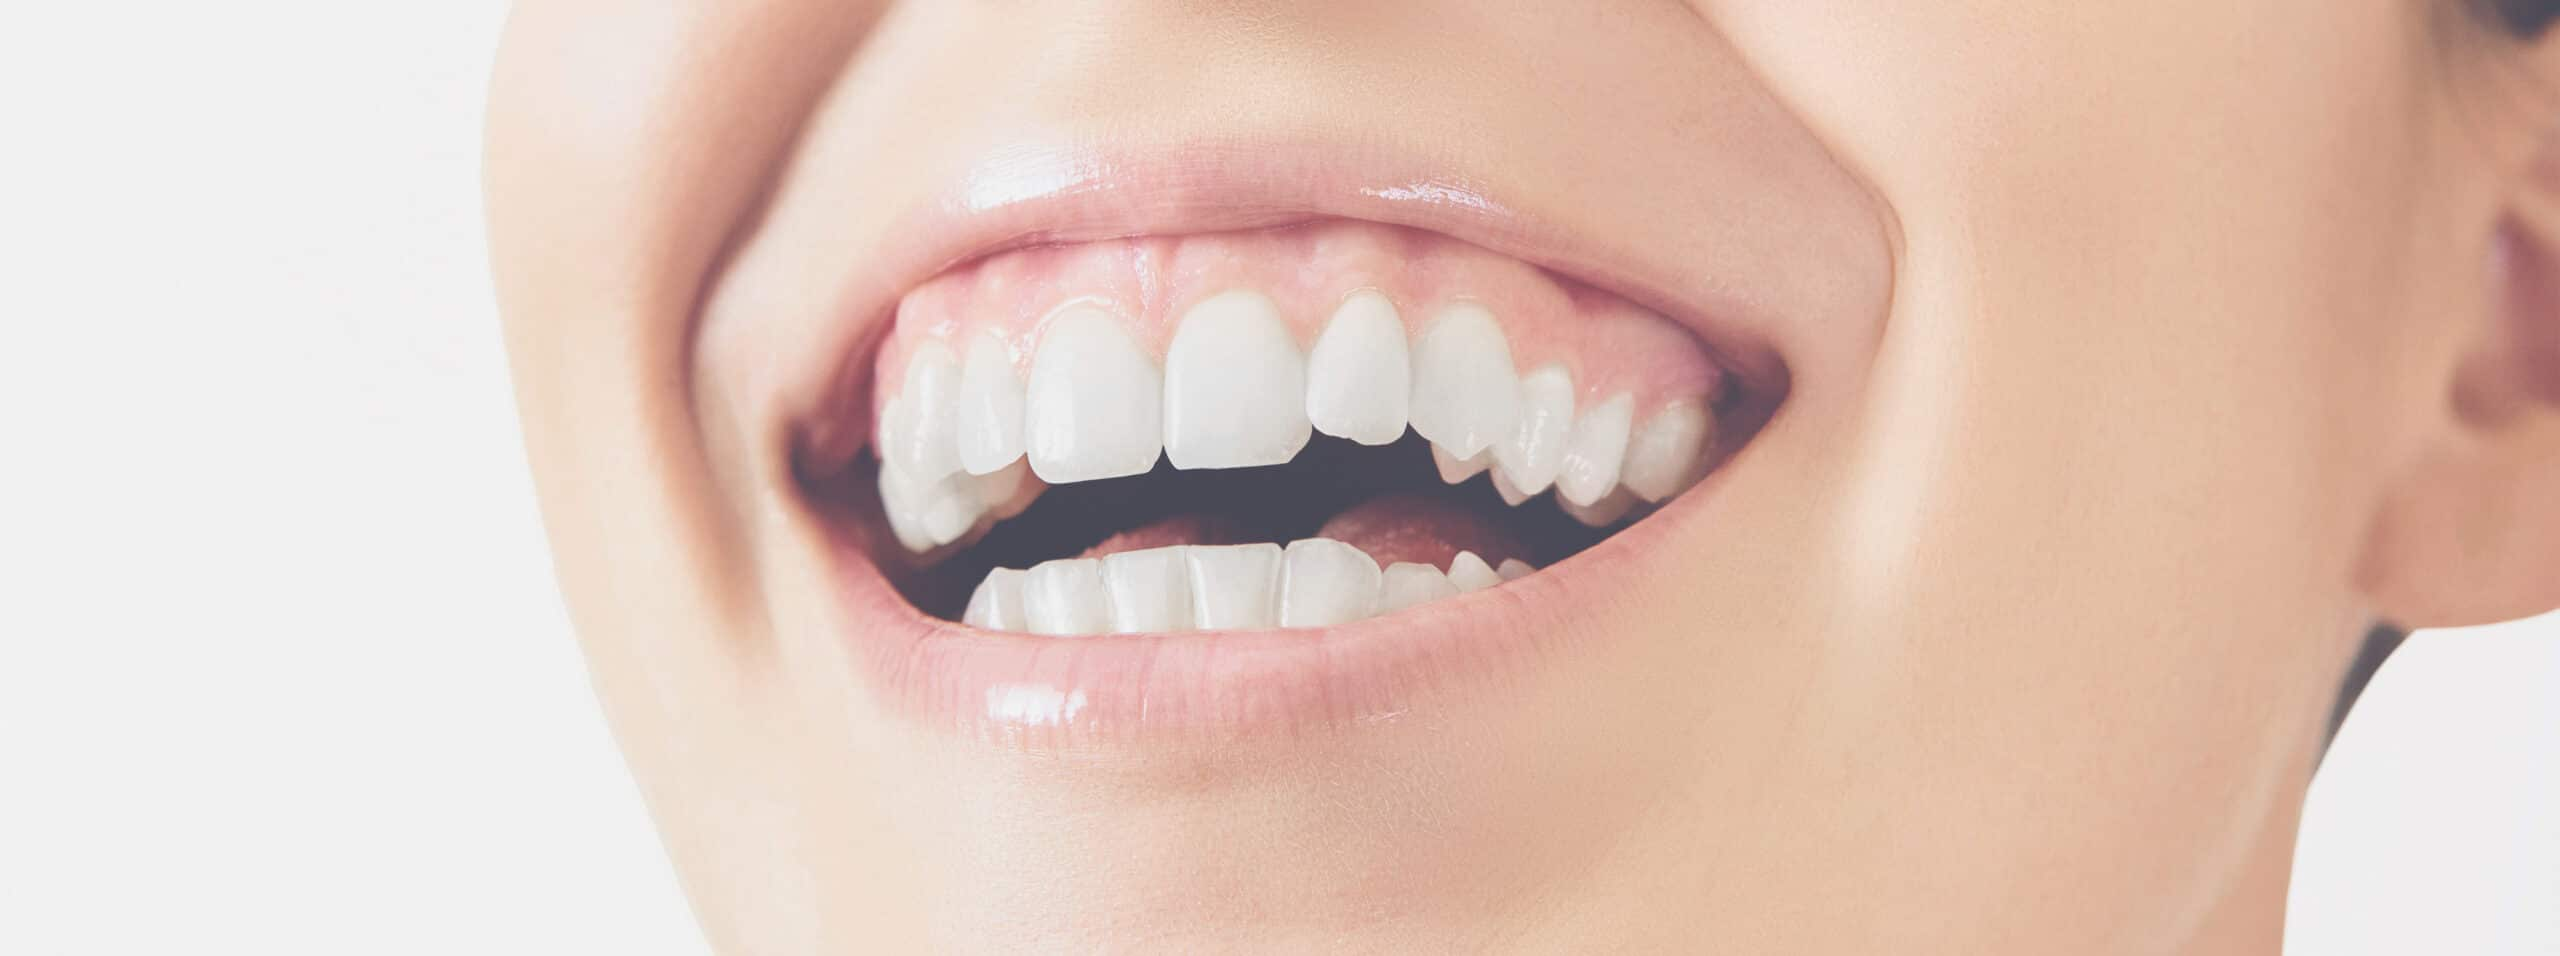 Protecting your teeth's enamel from erosion